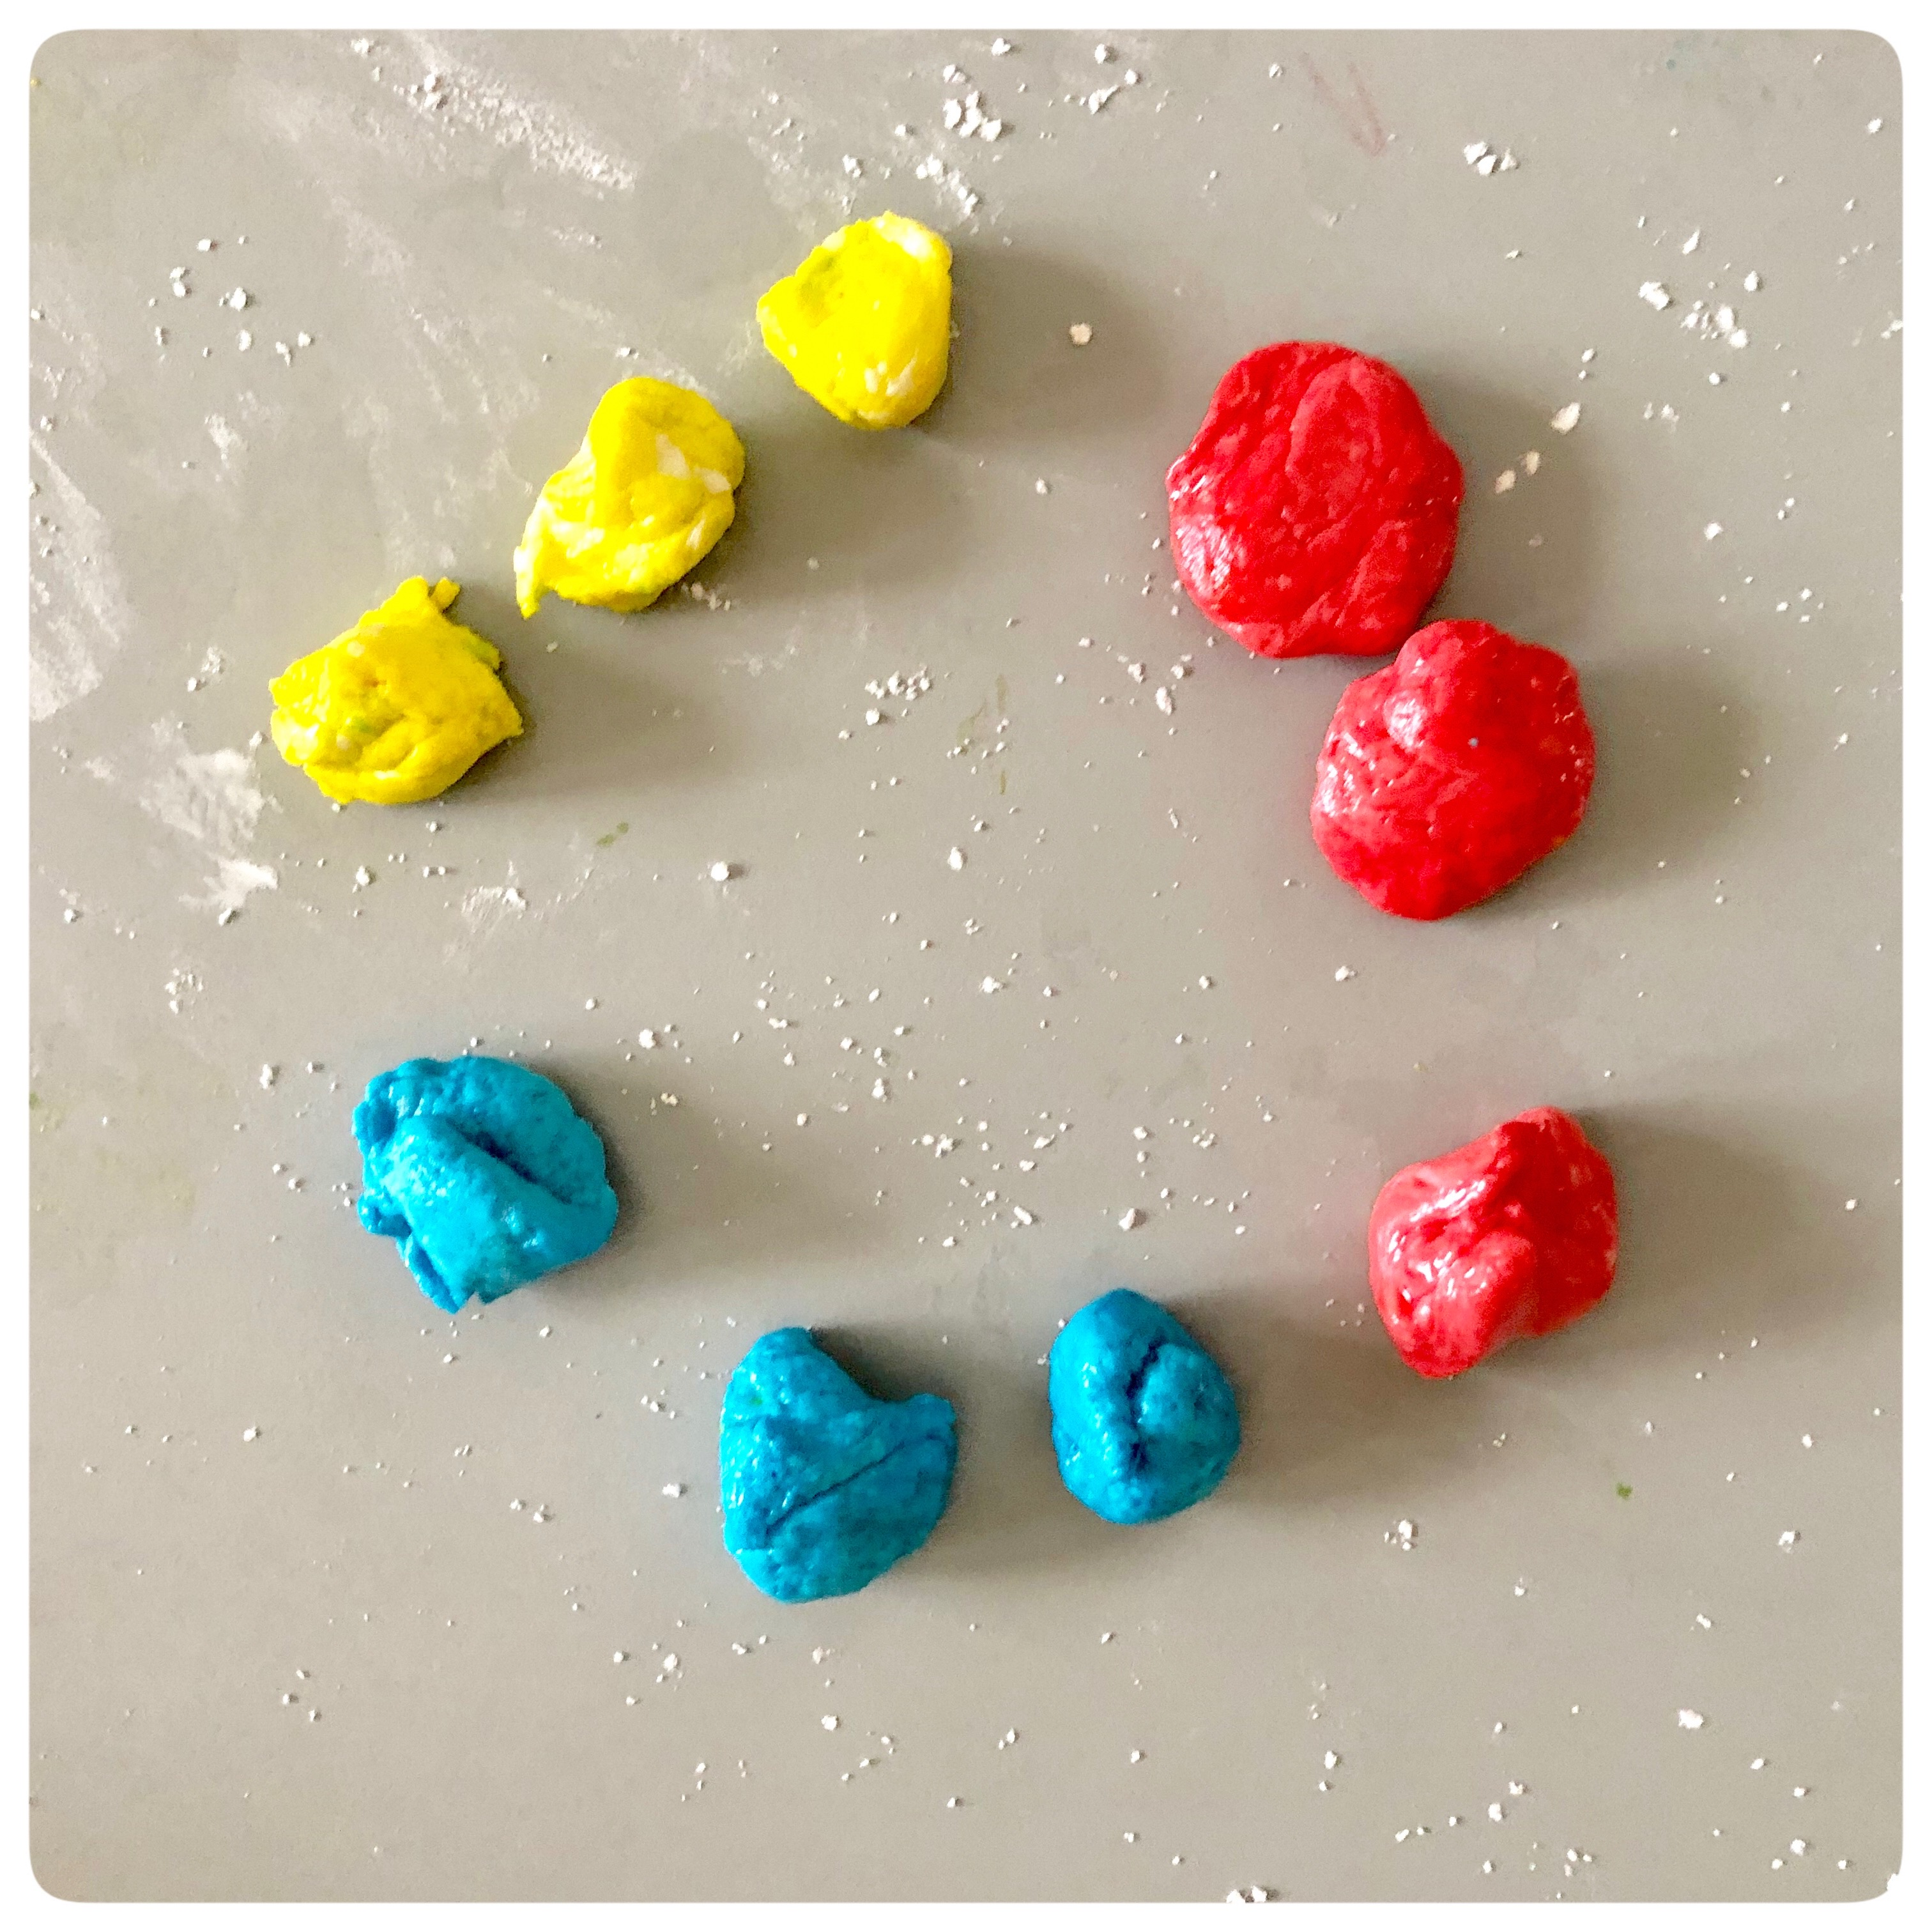 Edible Playdough: Creating interactive sensory activity to learn about Primary and Secondary colors